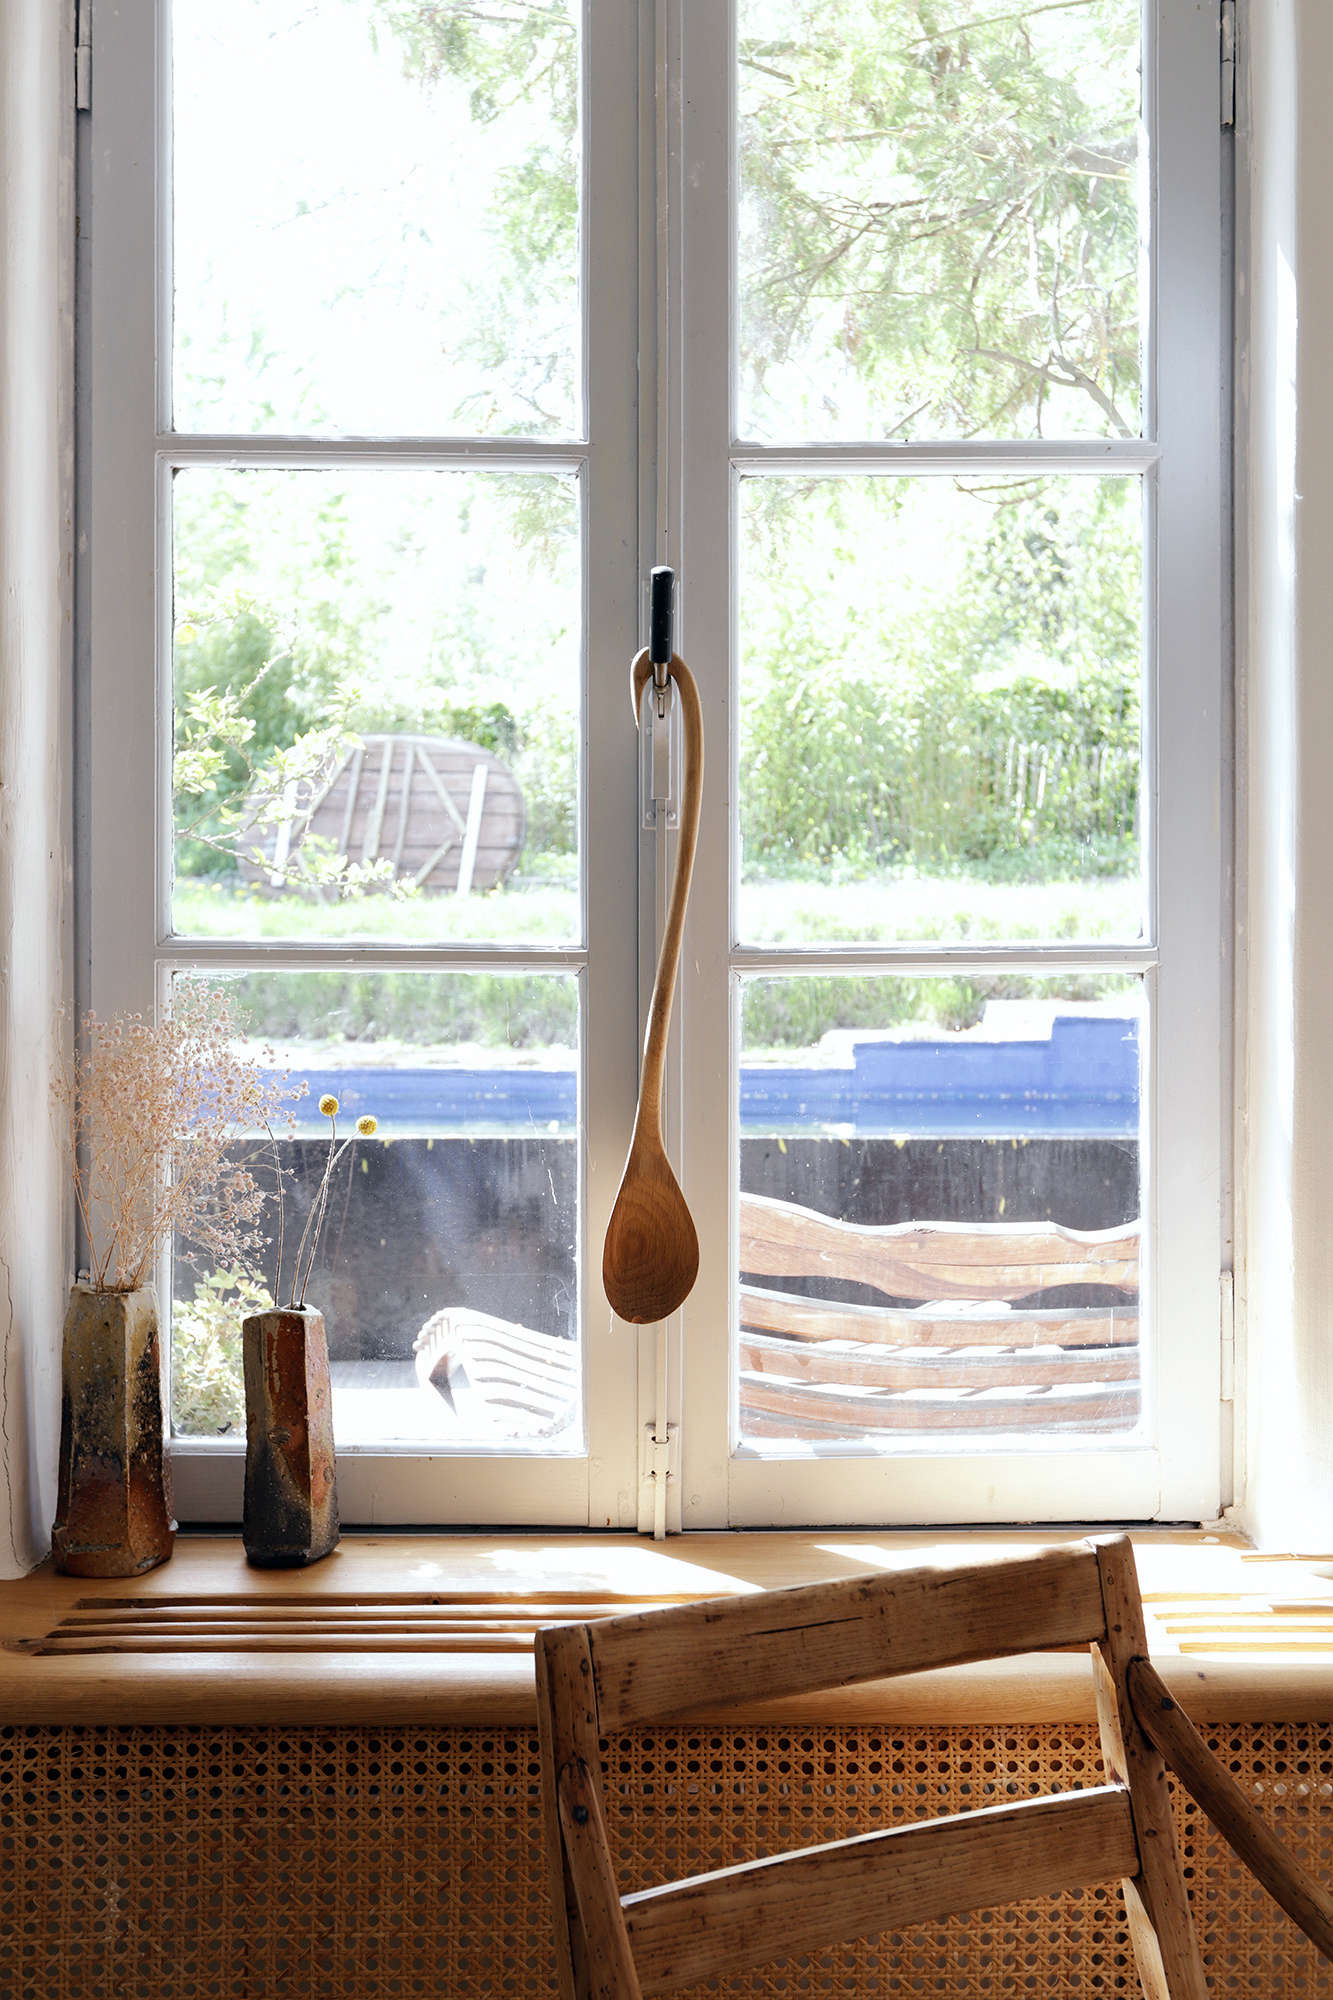 The curved handle of a handmade wooden spoon makes it ideal for dangling from the window latch in designer Valentin Loellmann's Maastricht home. Photograph by Jonas Loellman from 100 Percent Handmade: Valentin Loellmann's Historic River House in Maastricht.